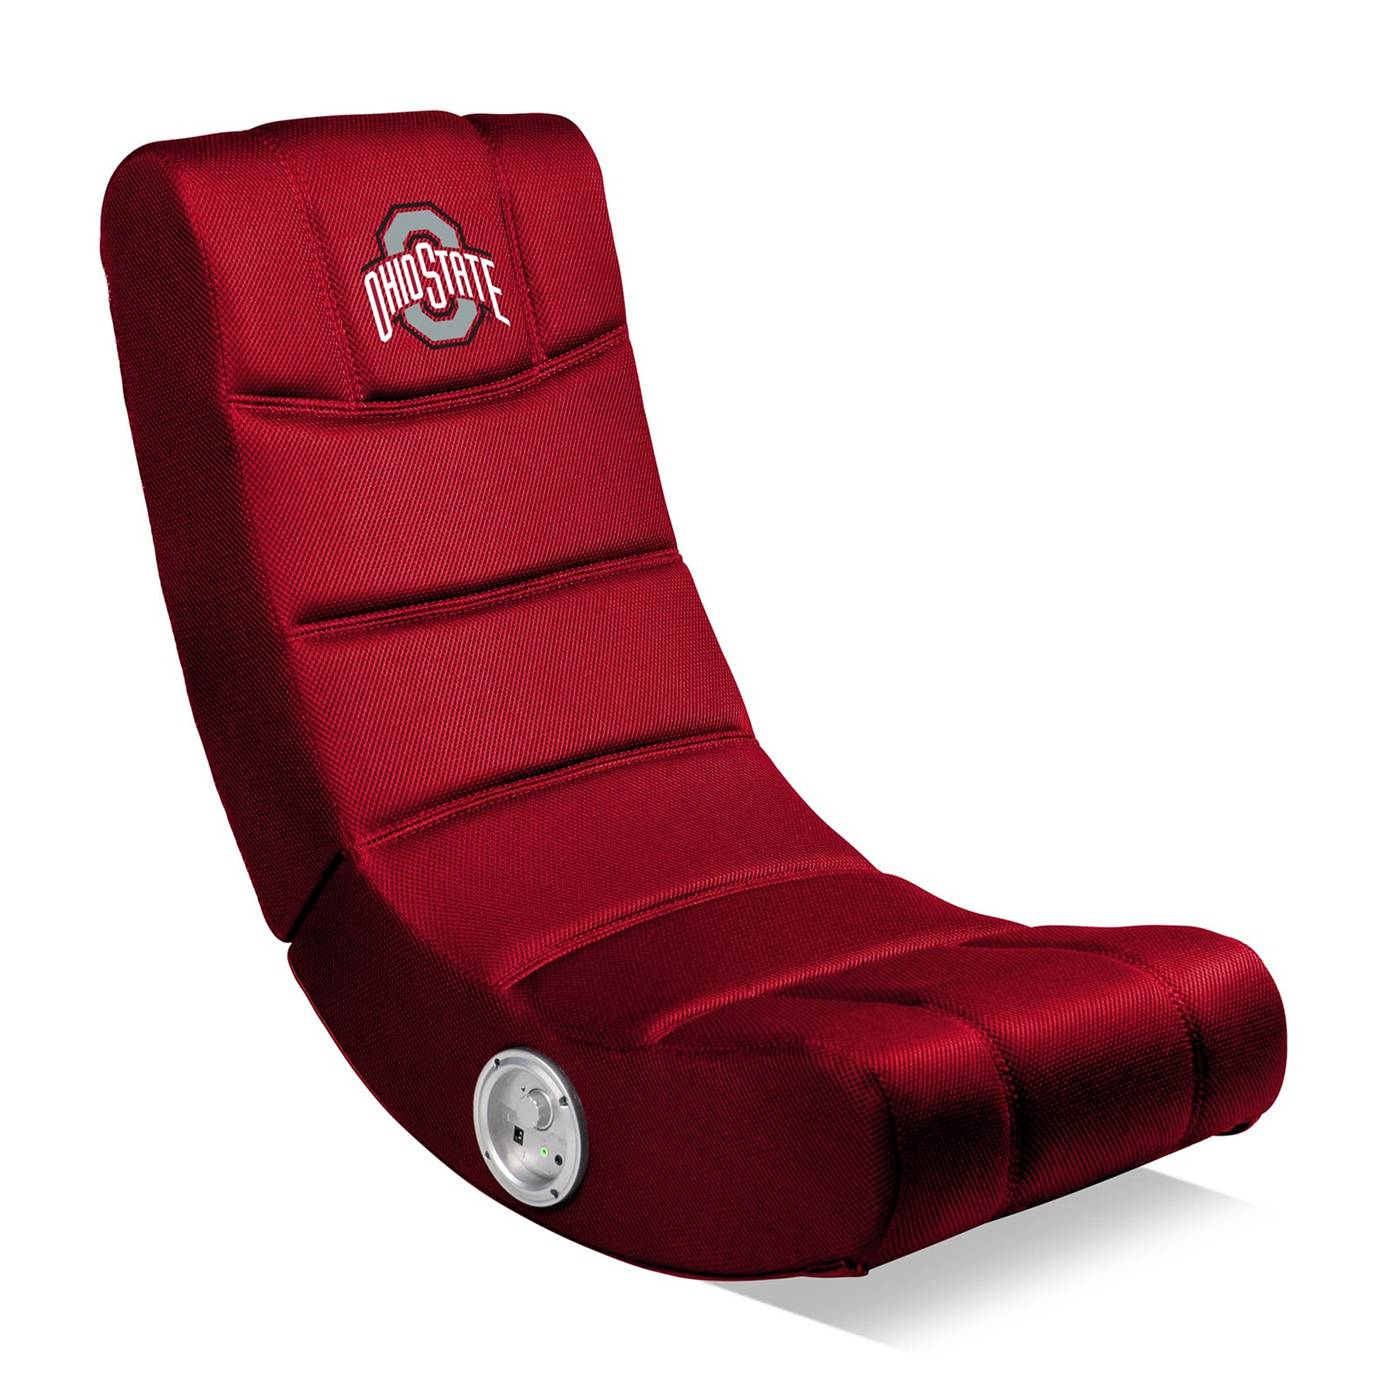 Whether youu0027re playing video games watching the game or listening to music the Ohio State Buckeyes Bluetooth Gaming Chair will provide a quality surround ...  sc 1 st  Sports Unlimited & Ohio State Buckeyes Bluetooth Gaming Chair islam-shia.org